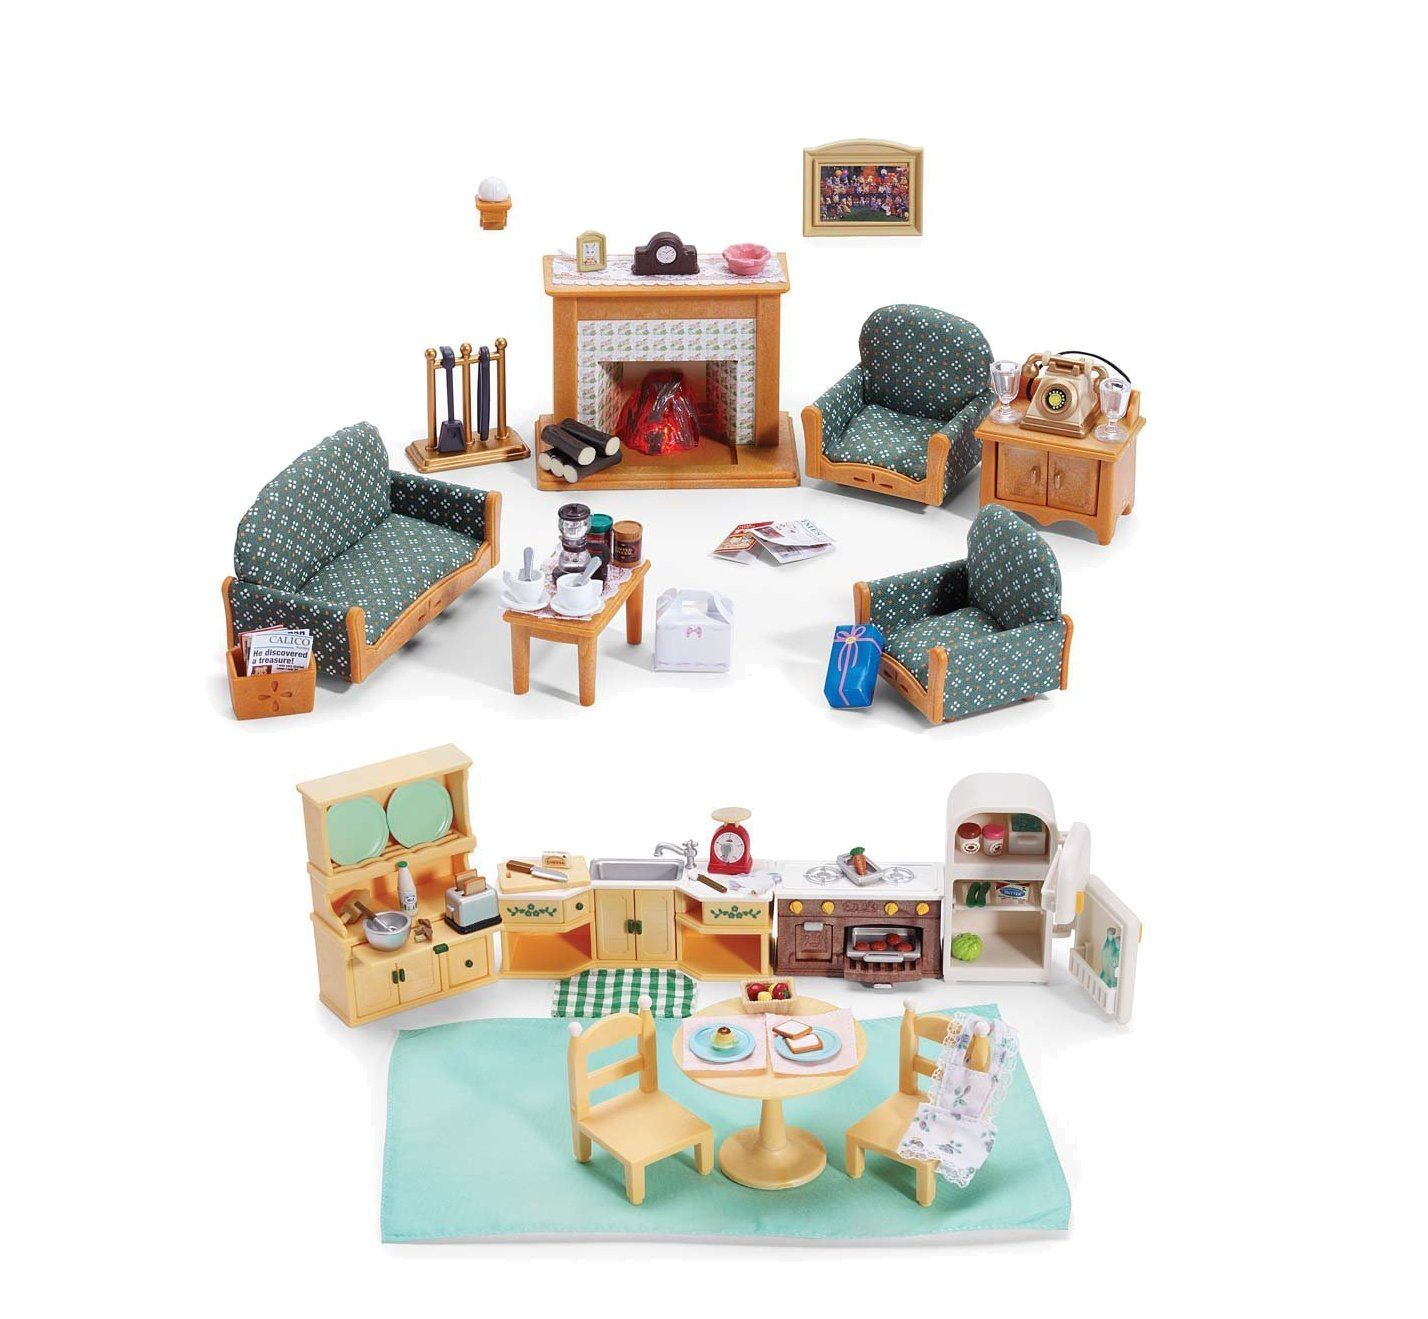 Amazon.com: Calico Critters Kozy Kitchen and Deluxe Living Room Play ...